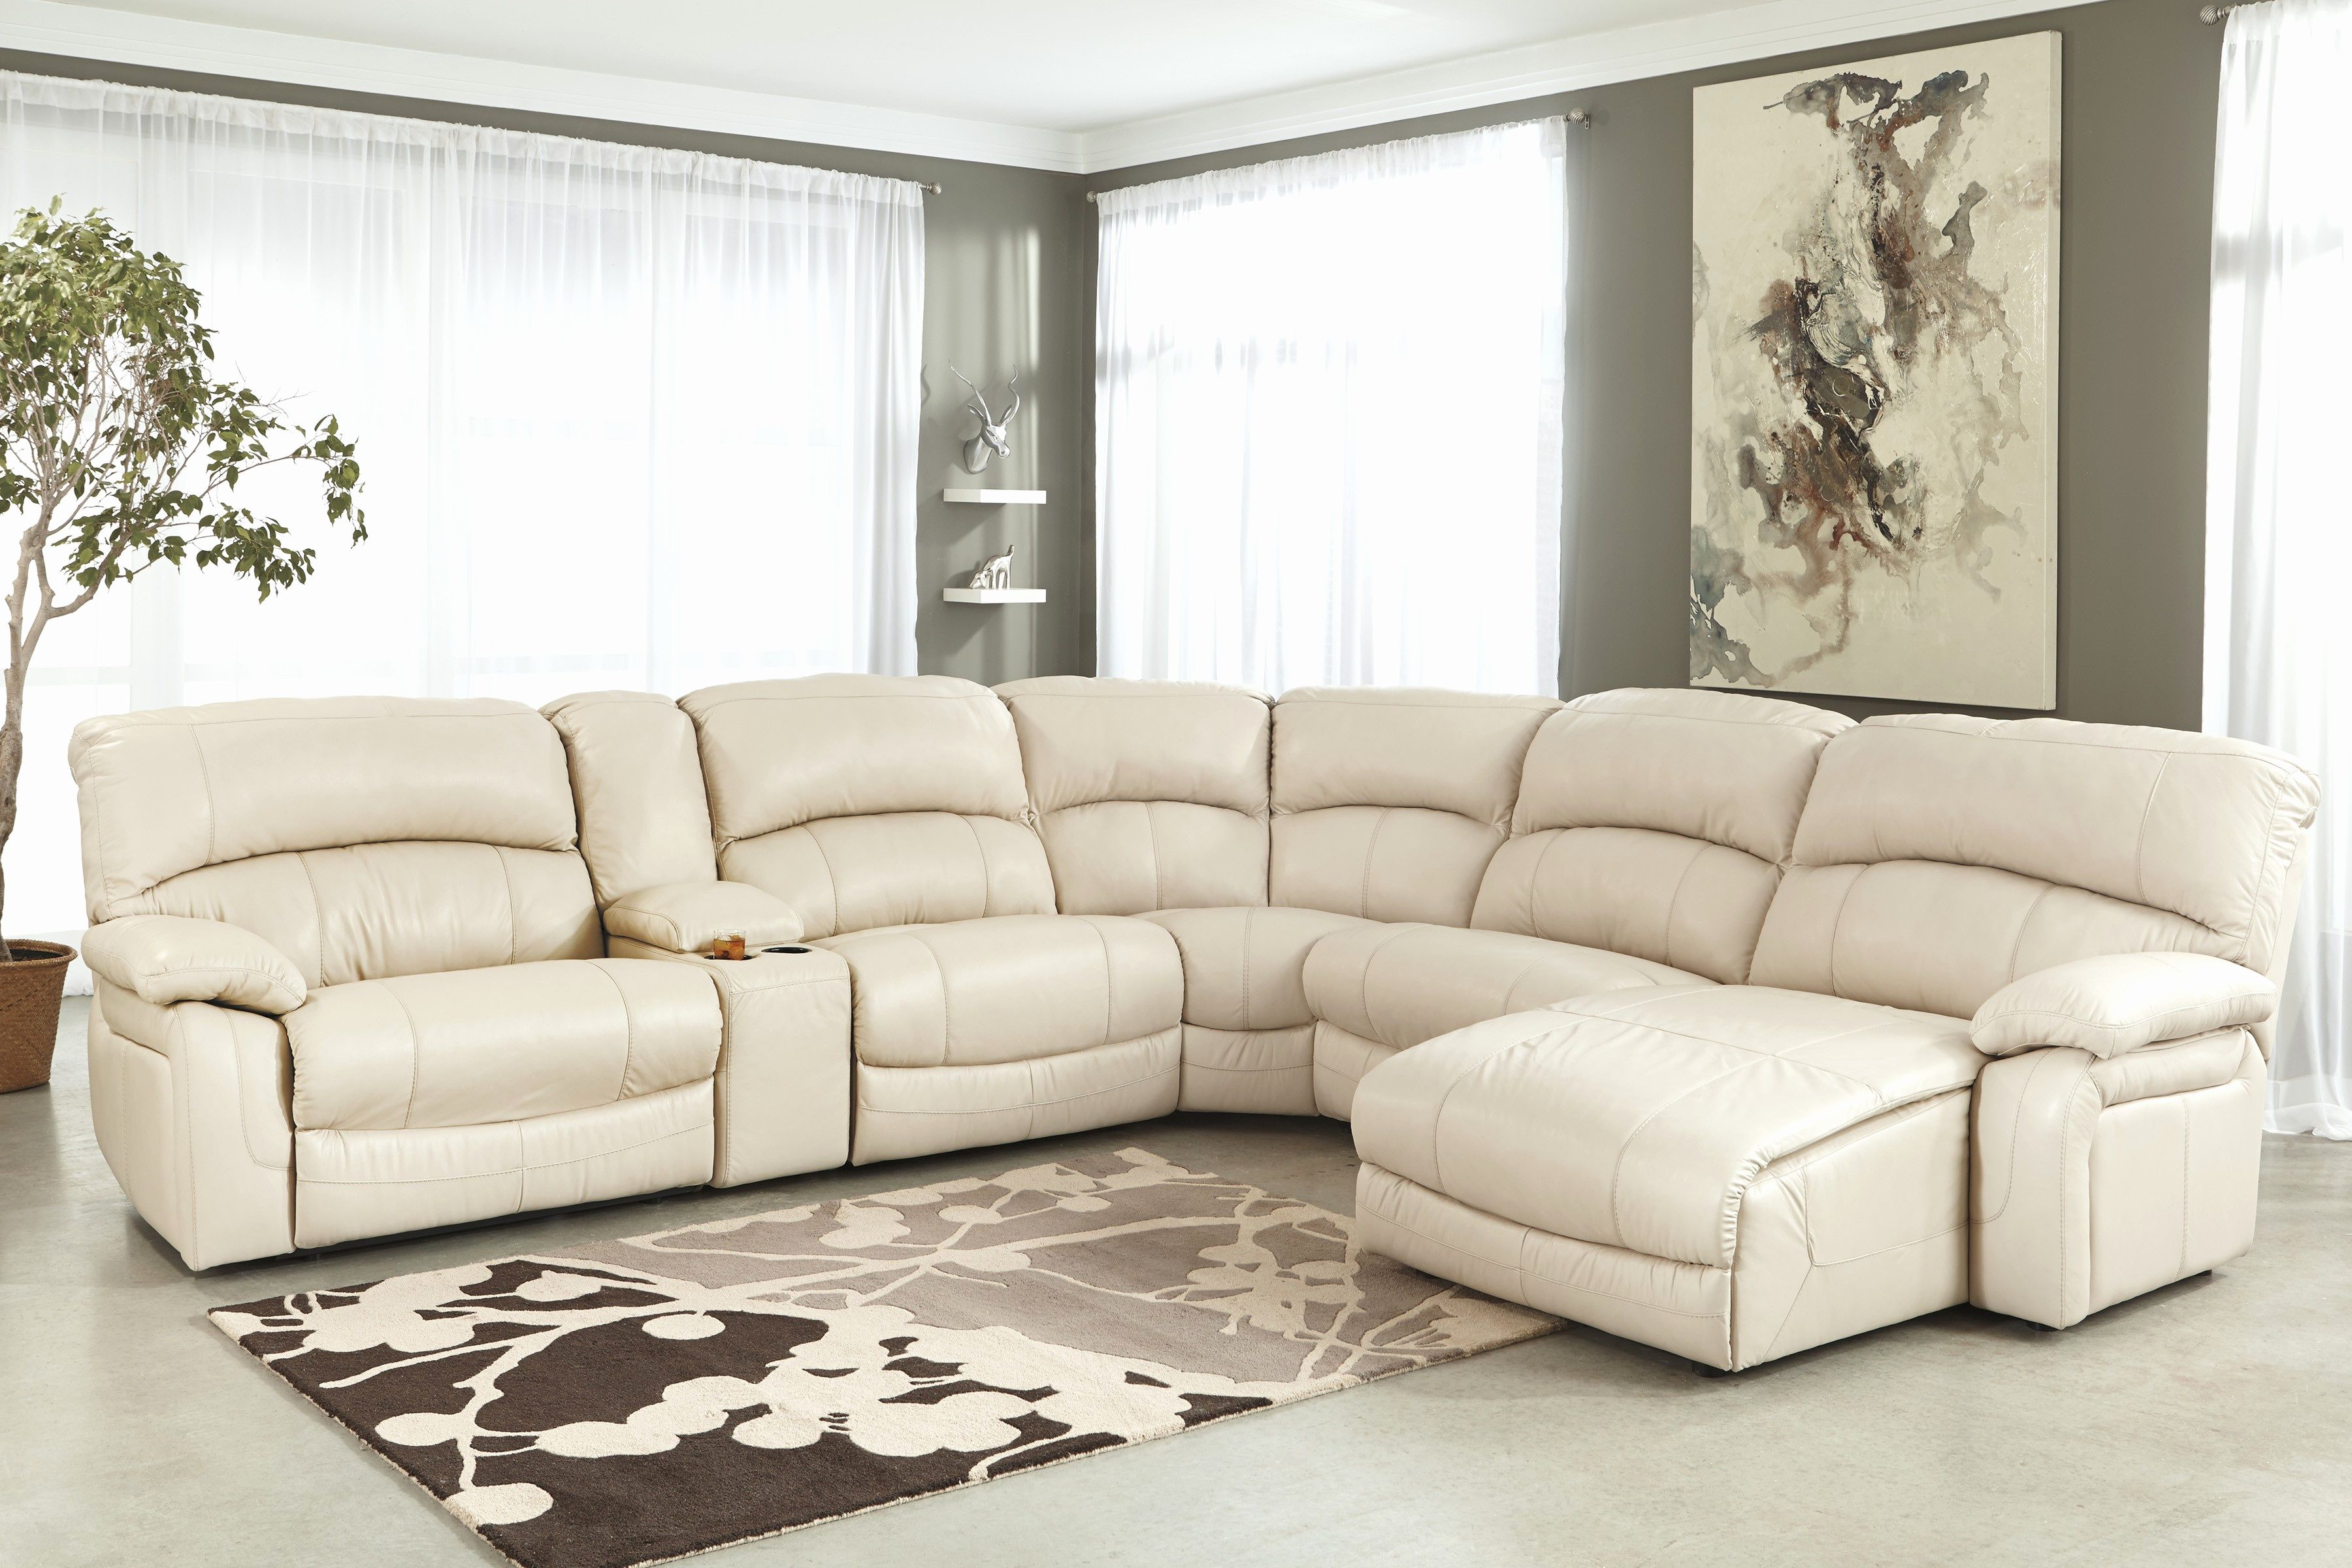 New Cream Sectional Sofa Pics Cream Leather Sectional Sofa With